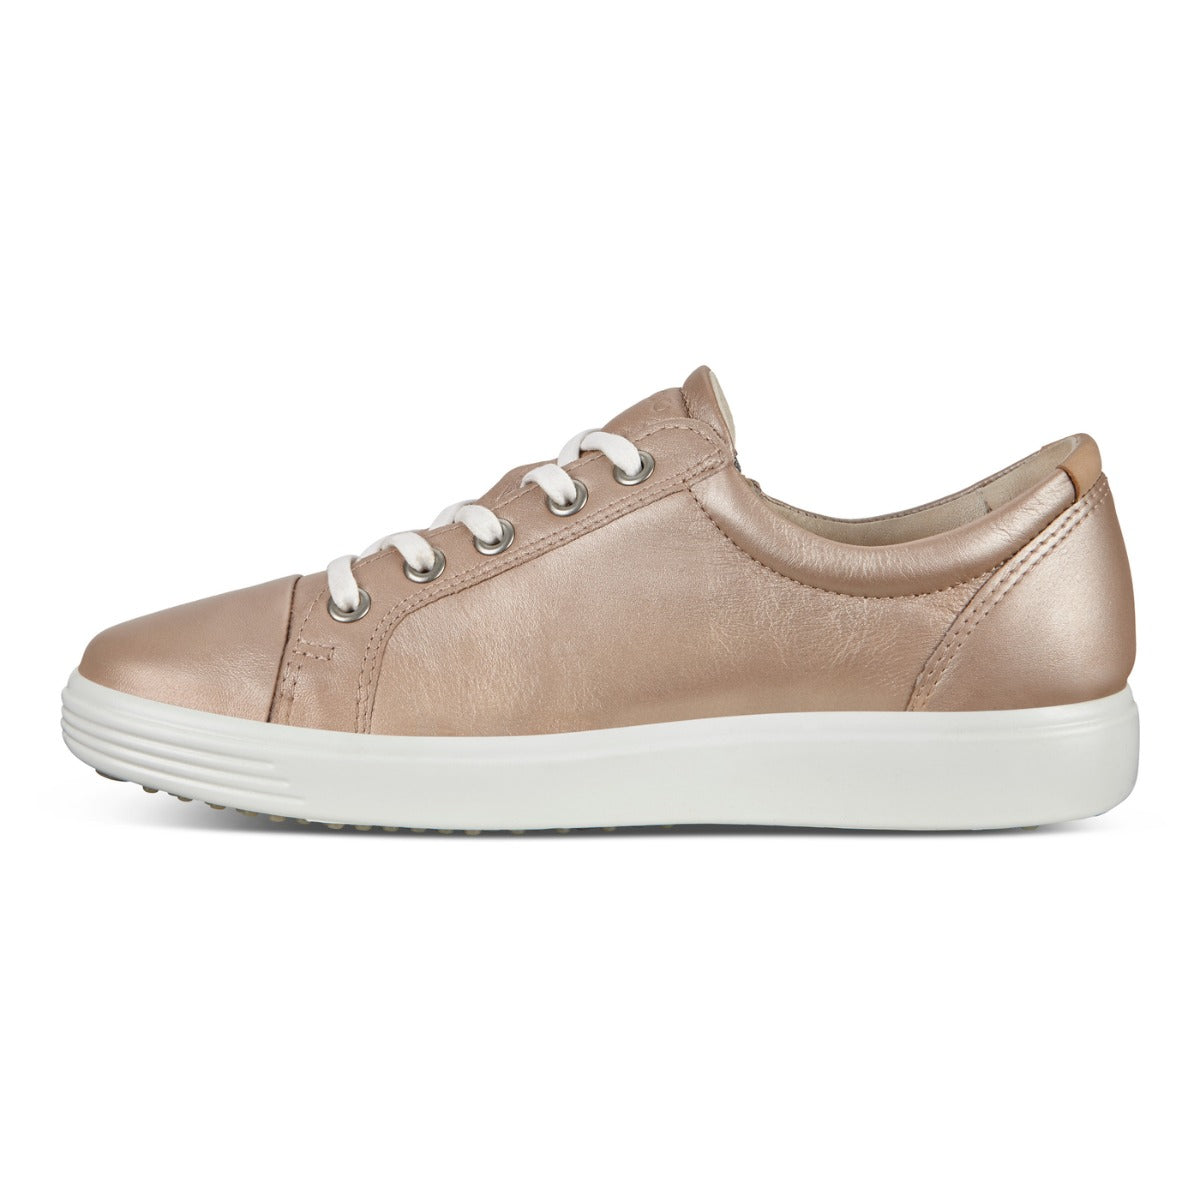 Soft 7.0 - Champagne Metallic - 43085351408